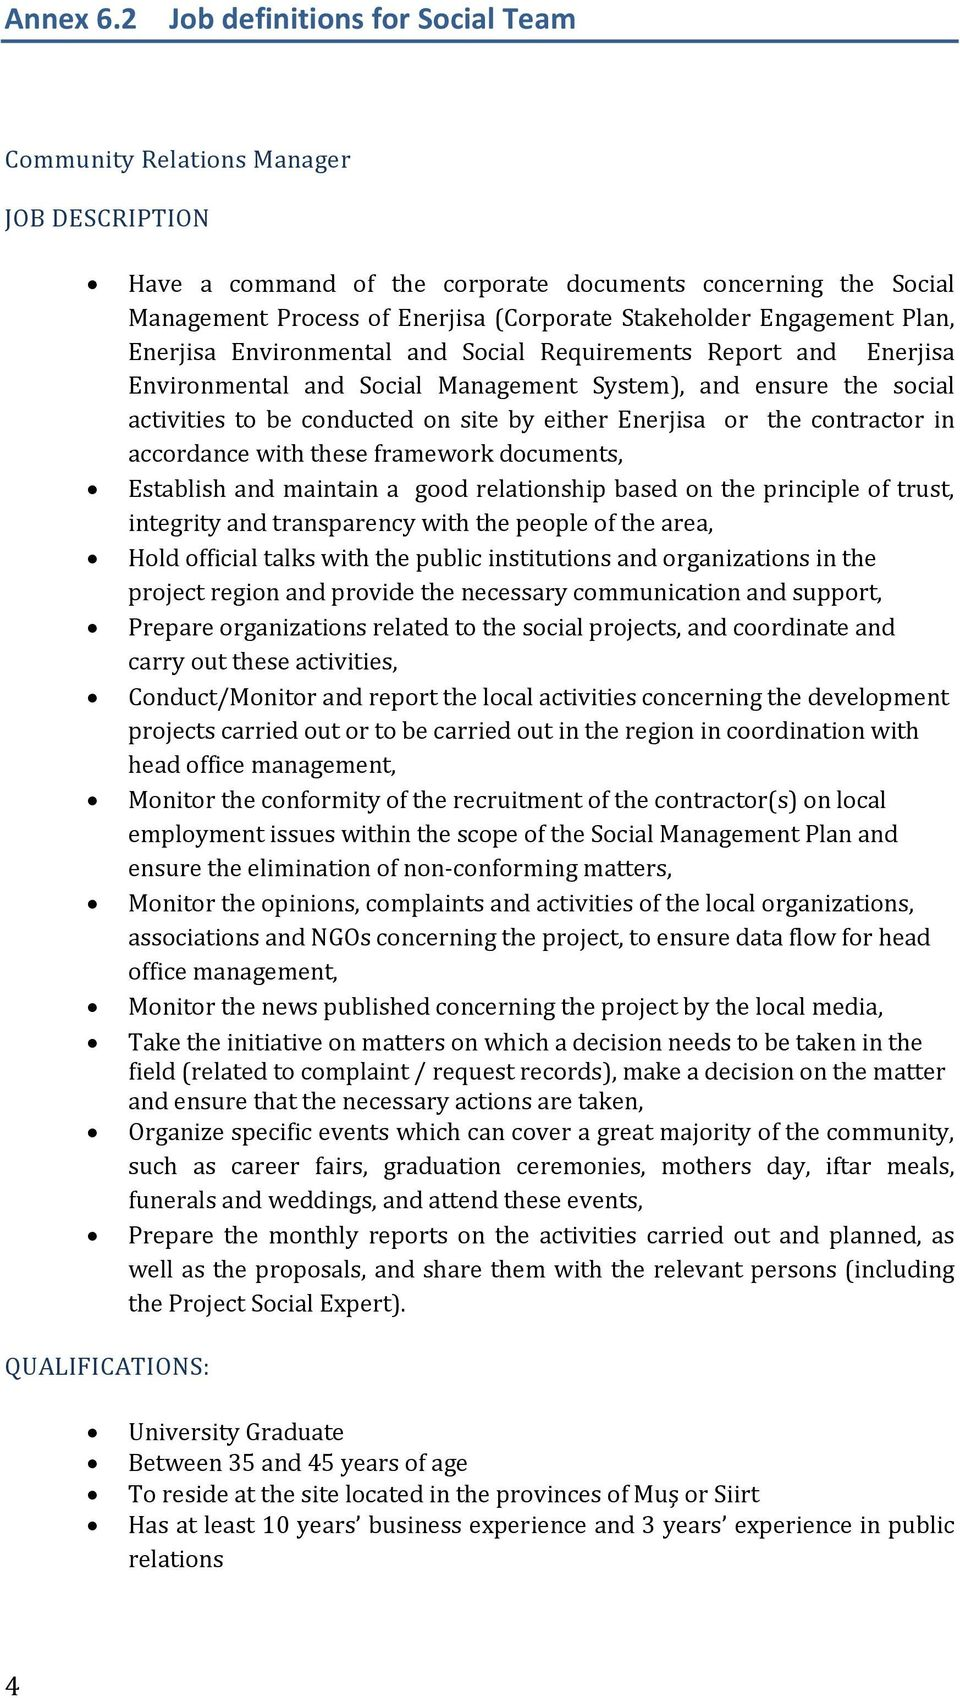 Engagement Plan, Enerjisa Environmental and Social Requirements Report and Enerjisa Environmental and Social Management System), and ensure the social activities to be conducted on site by either